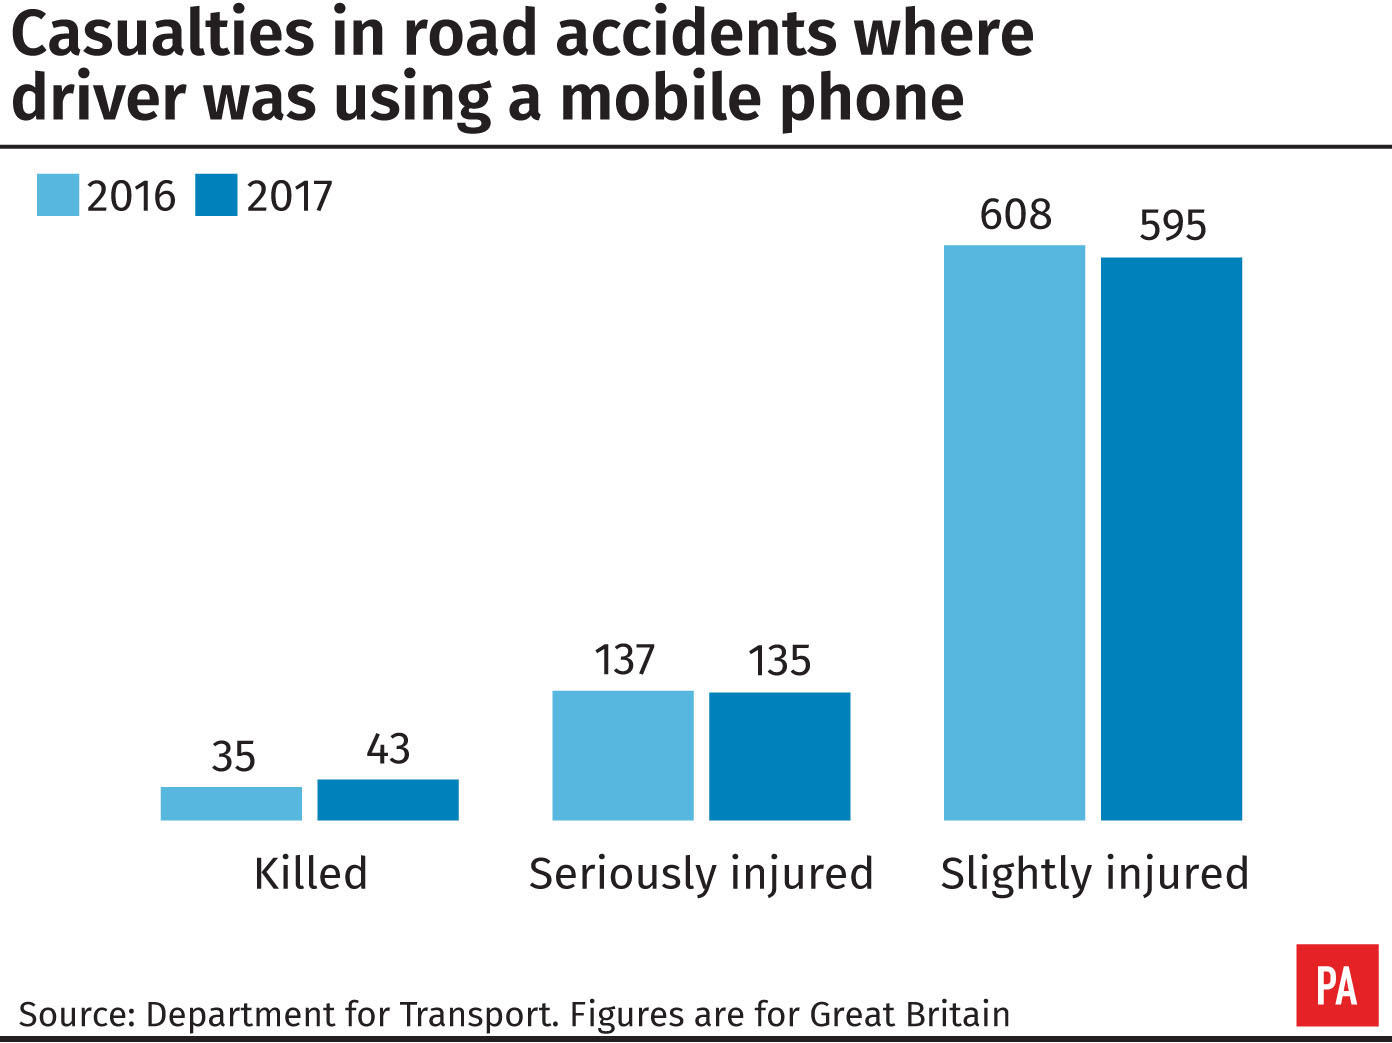 Casualties in road accidents where driver was using a mobile